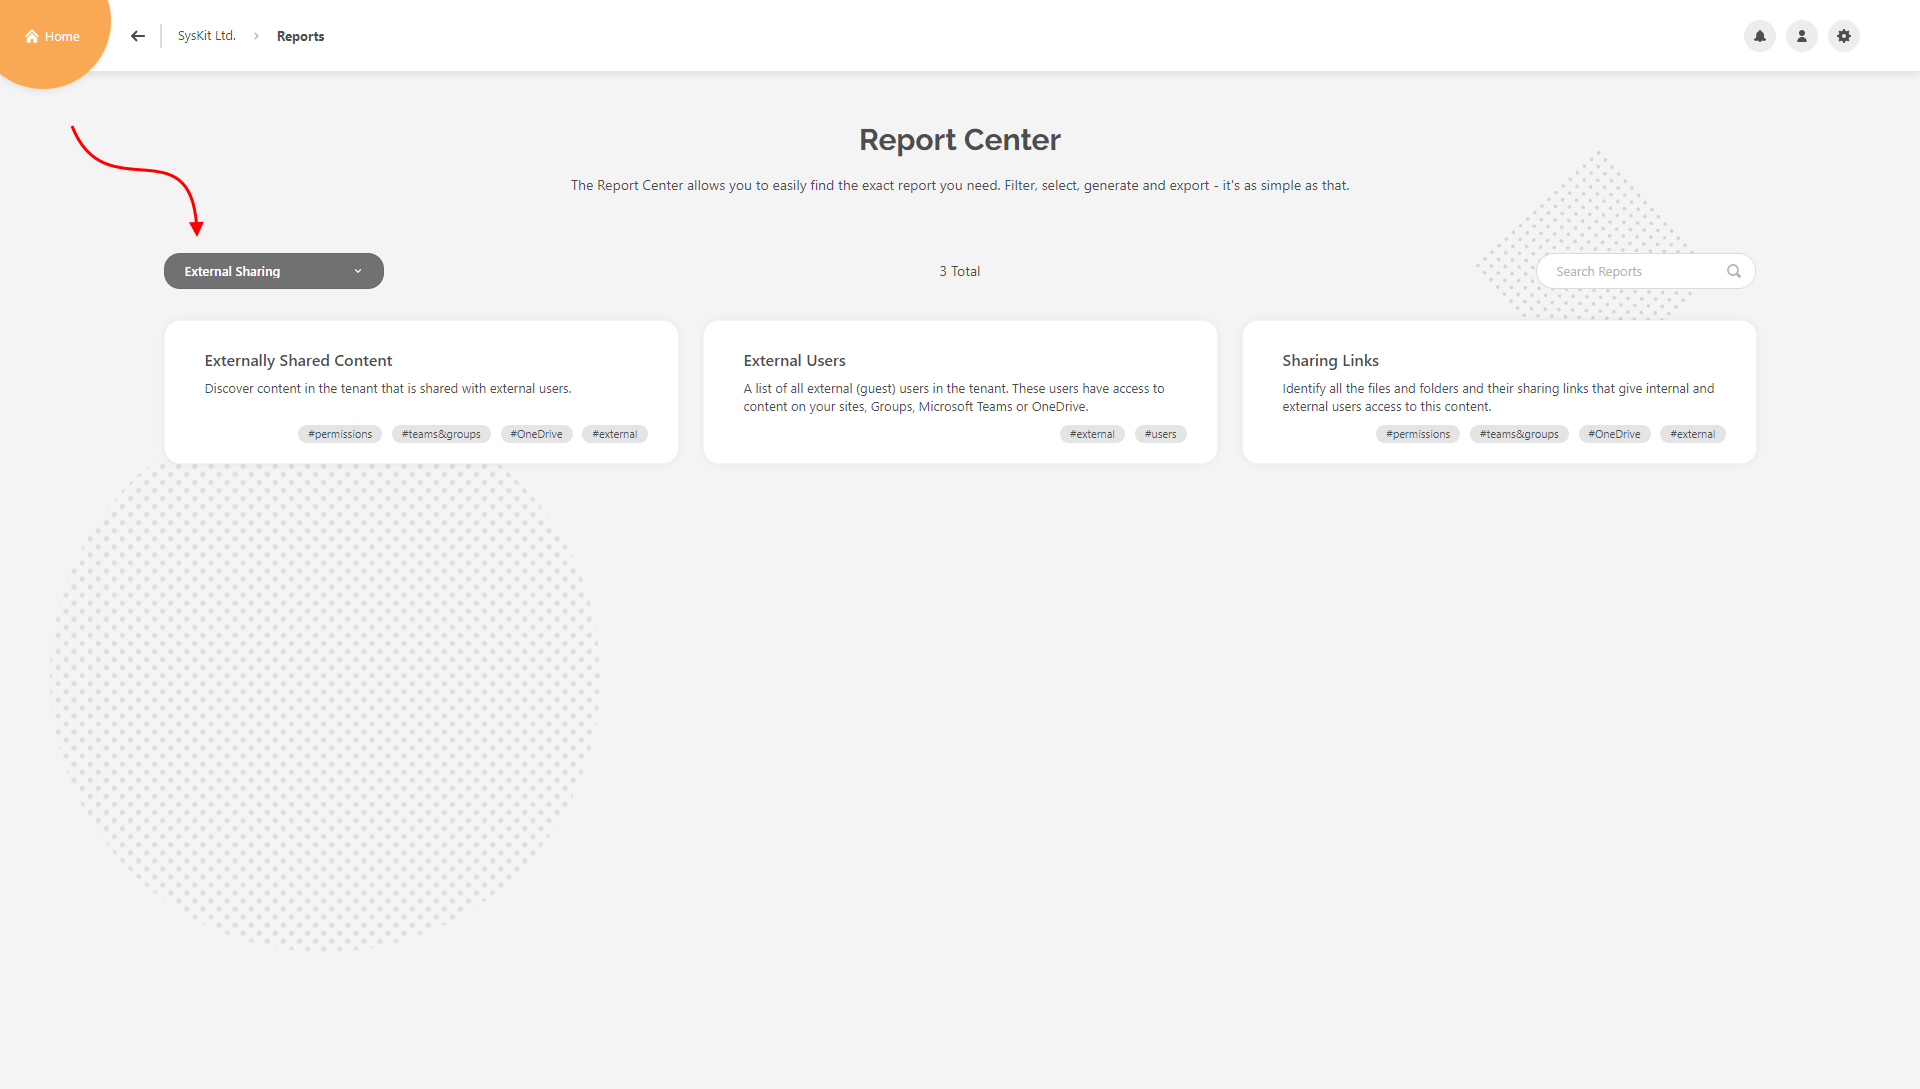 Report Center - External Sharing category selected